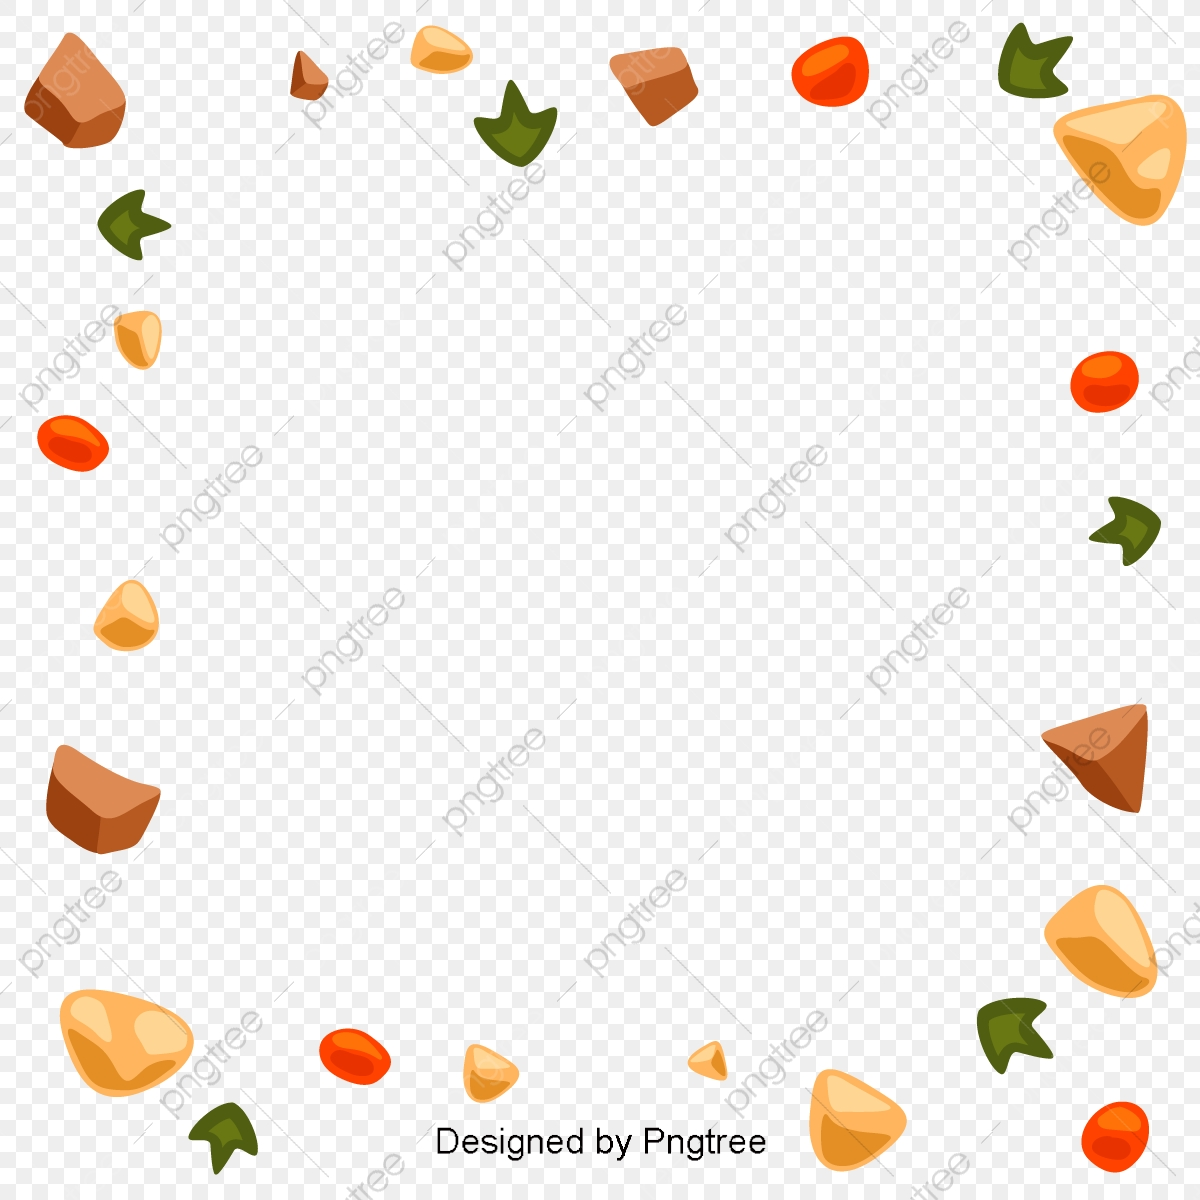 Food Tomato Border, Food, Tomatoes, Bread PNG and Vector.